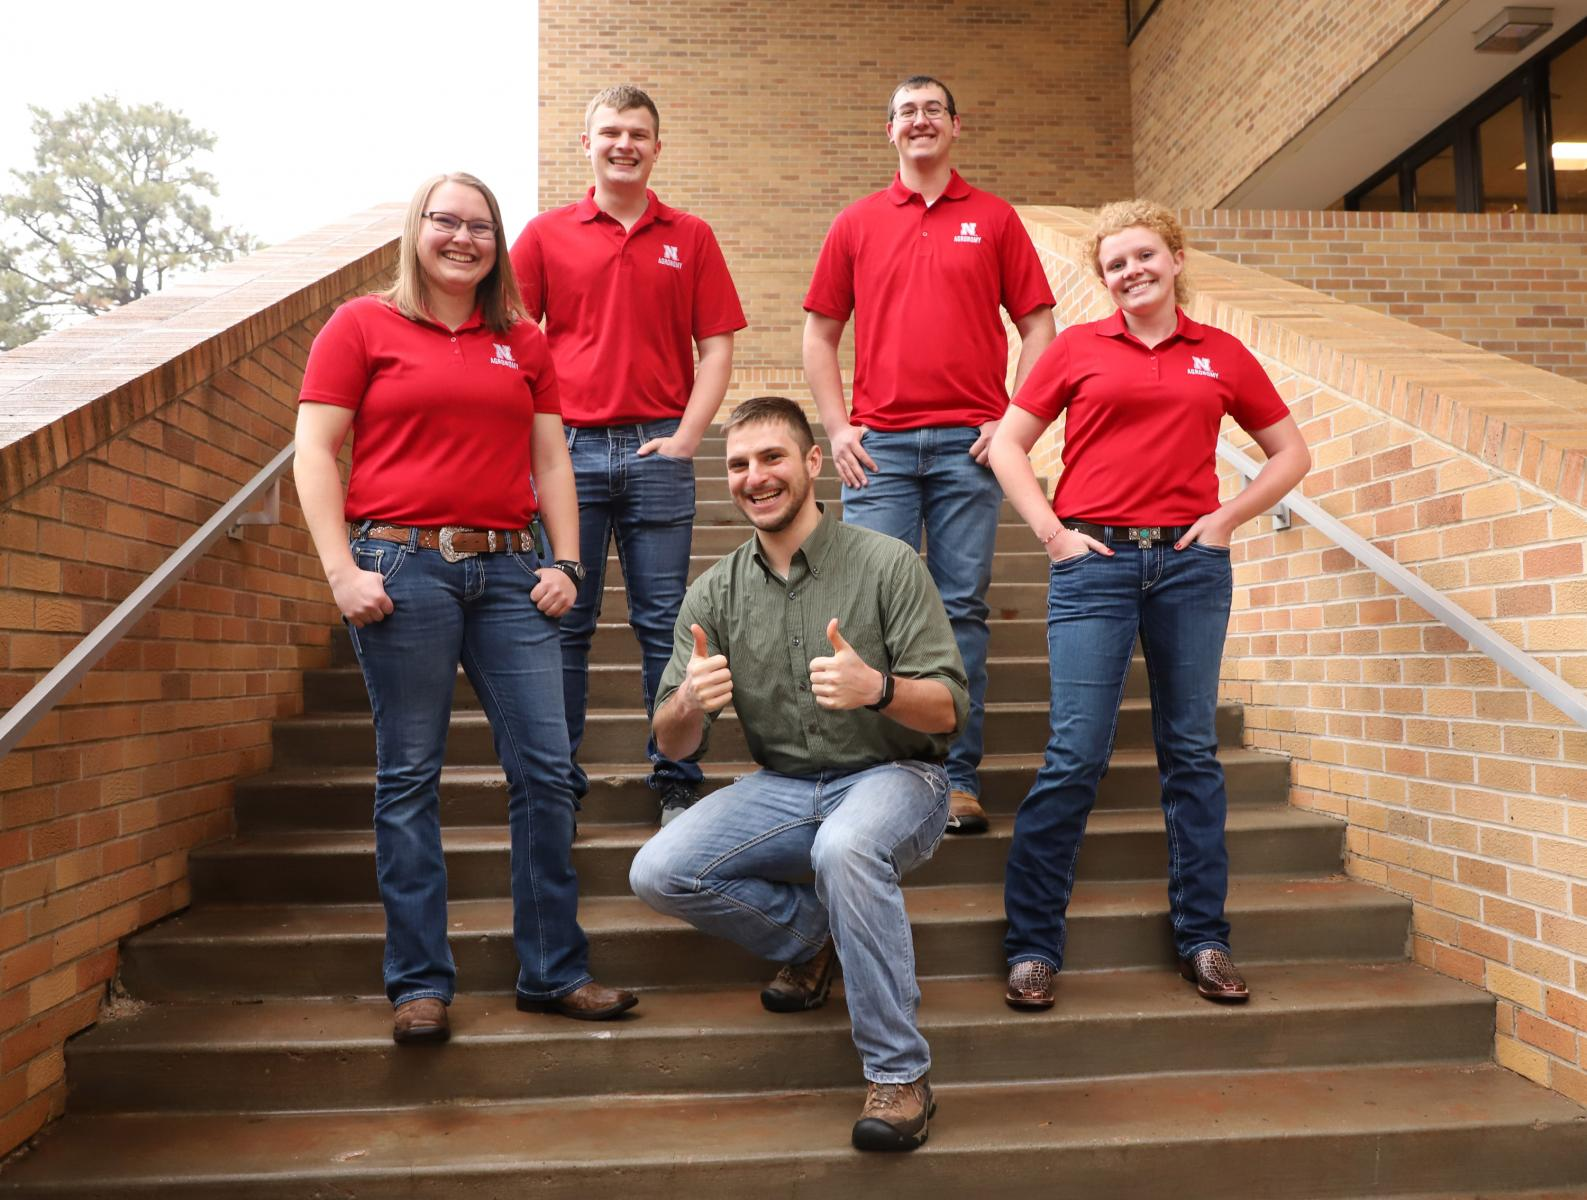 Members of Crops Judging Team and coach Adam Striegel